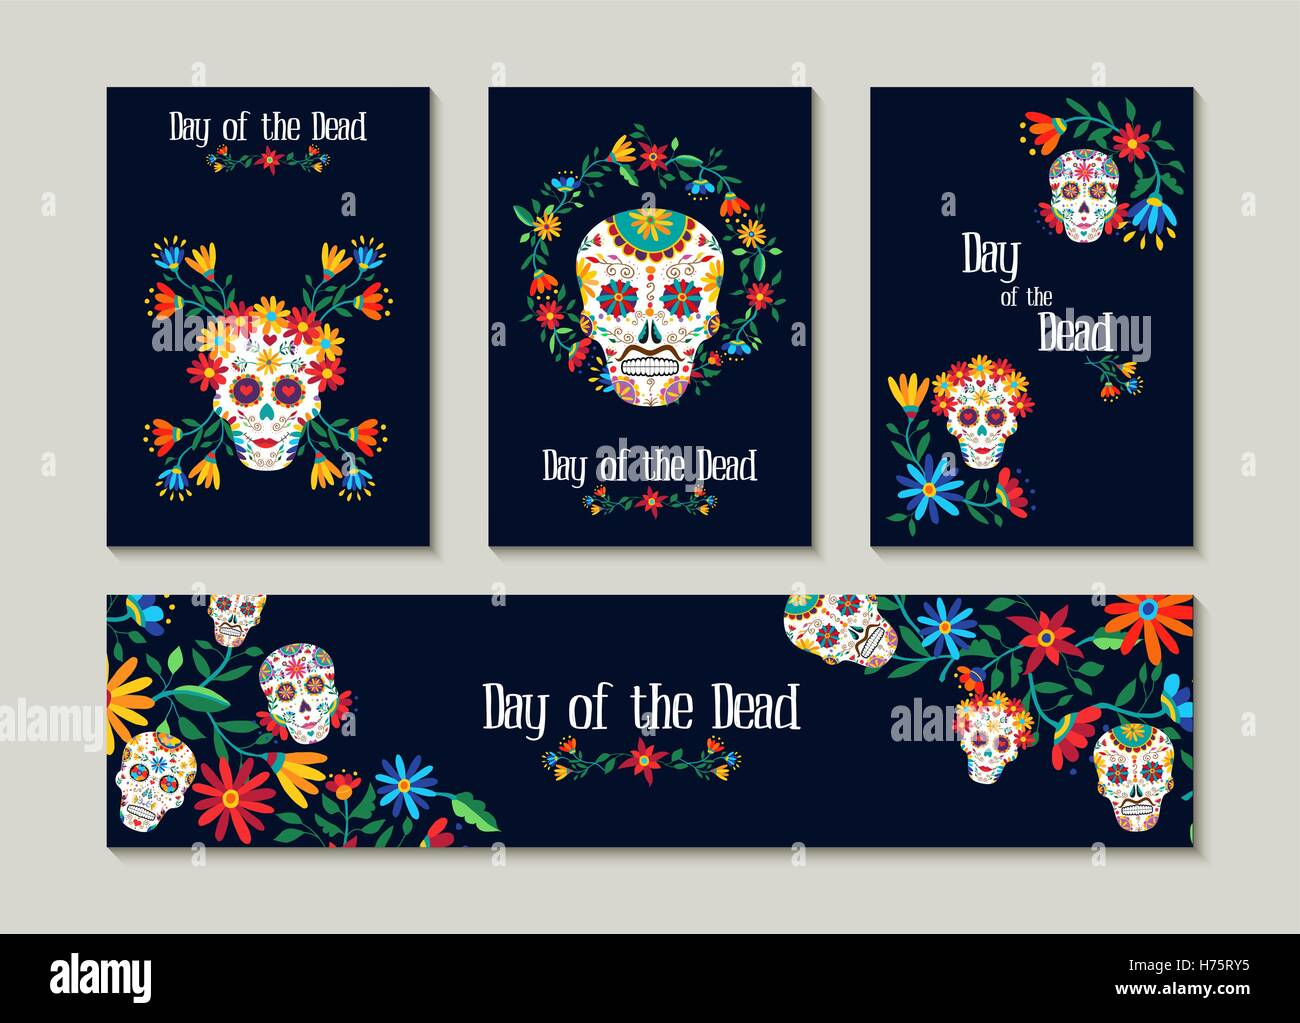 Day of the dead template set for greeting card label or tag stock day of the dead template set for greeting card label or tag traditional mexican decoration with colorful art and flowers eps1 m4hsunfo